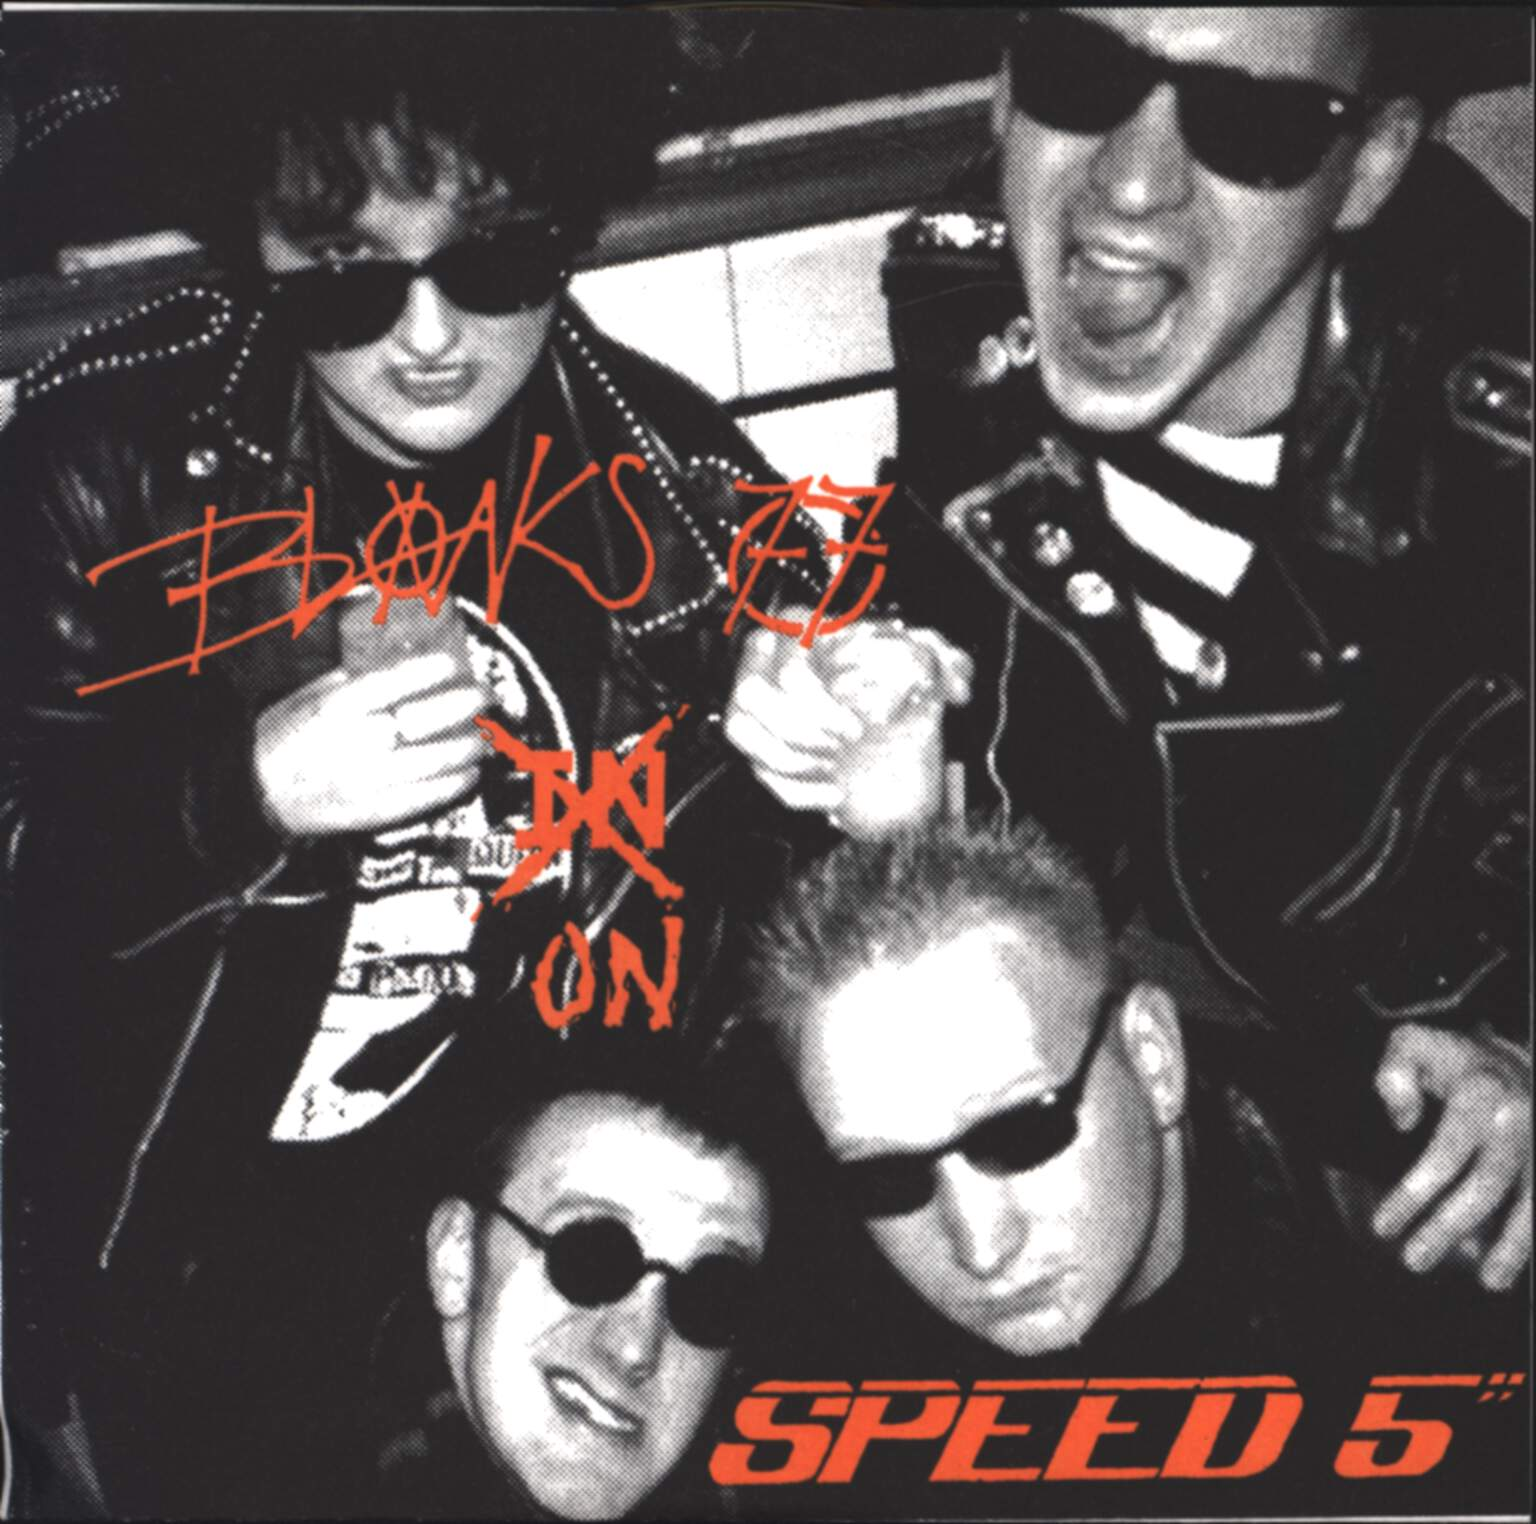 "Blanks 77: Speed 5"", 5"" Vinyl Single"